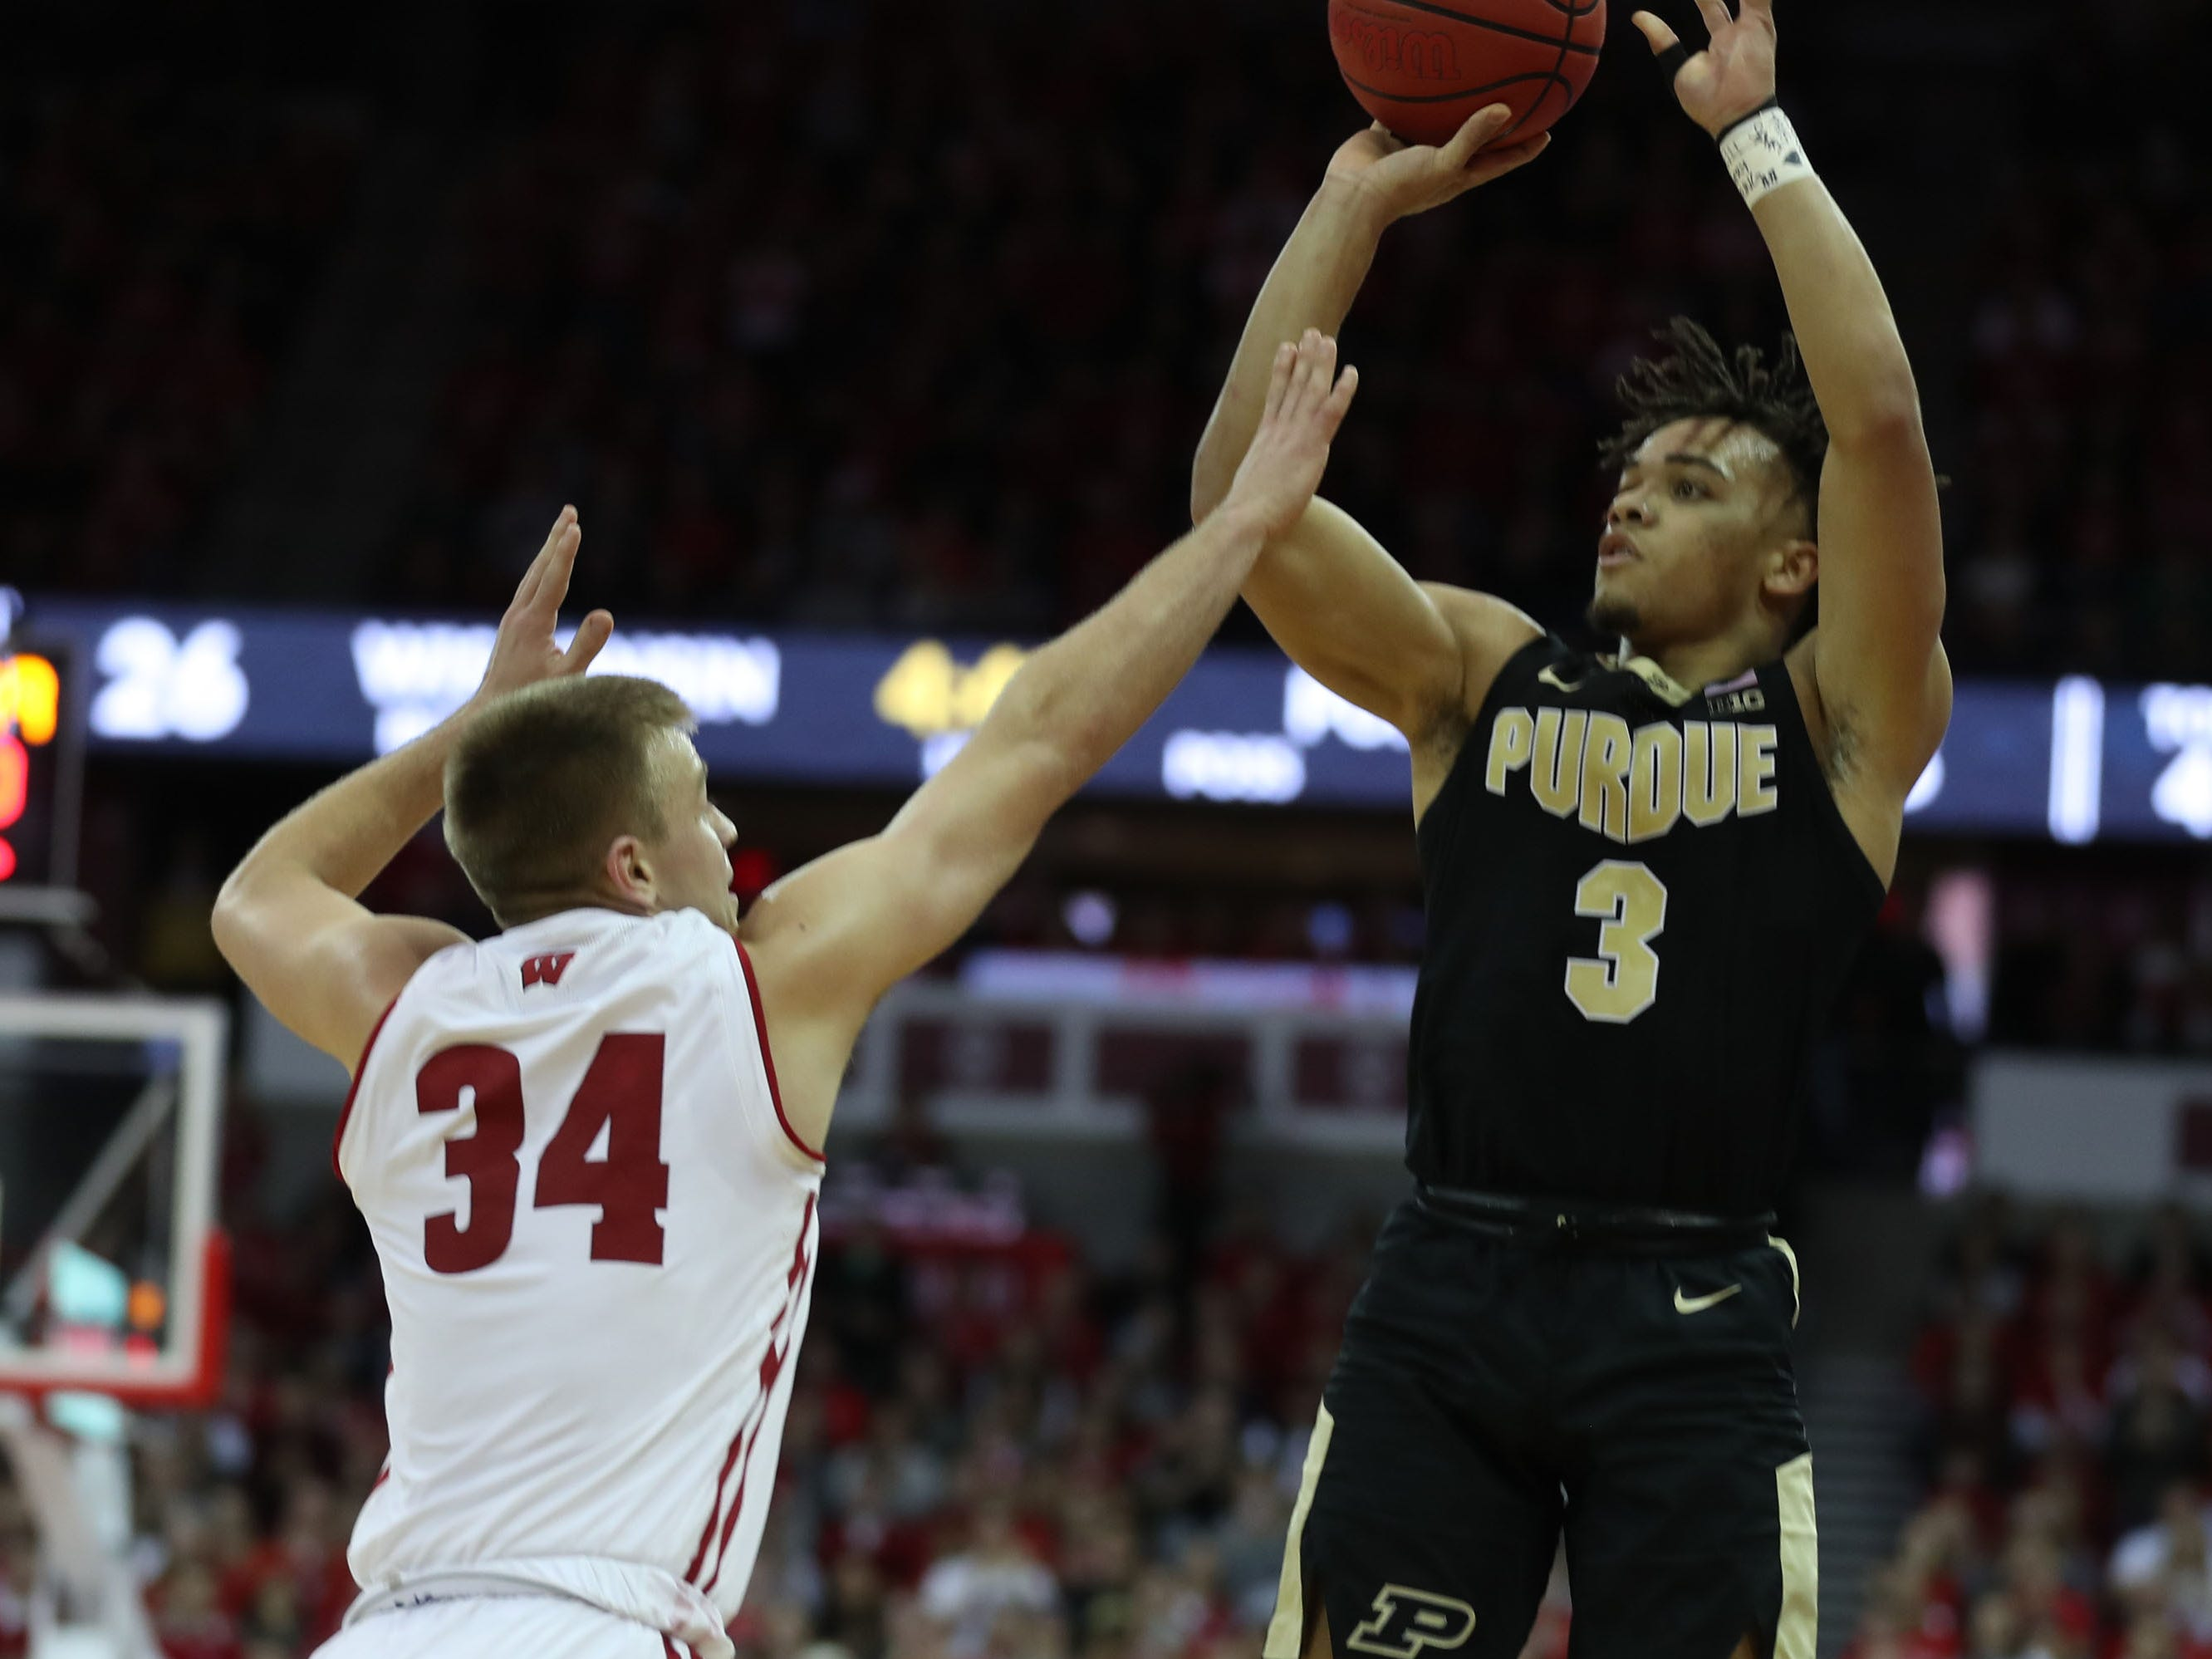 Brad Davison and his Badgers teammates had no answers on how to stop Purdue guard Carsen Edwards, who went off for 36 points in the Boilermakers' overtime victory on Friday night at the Kohl Center.